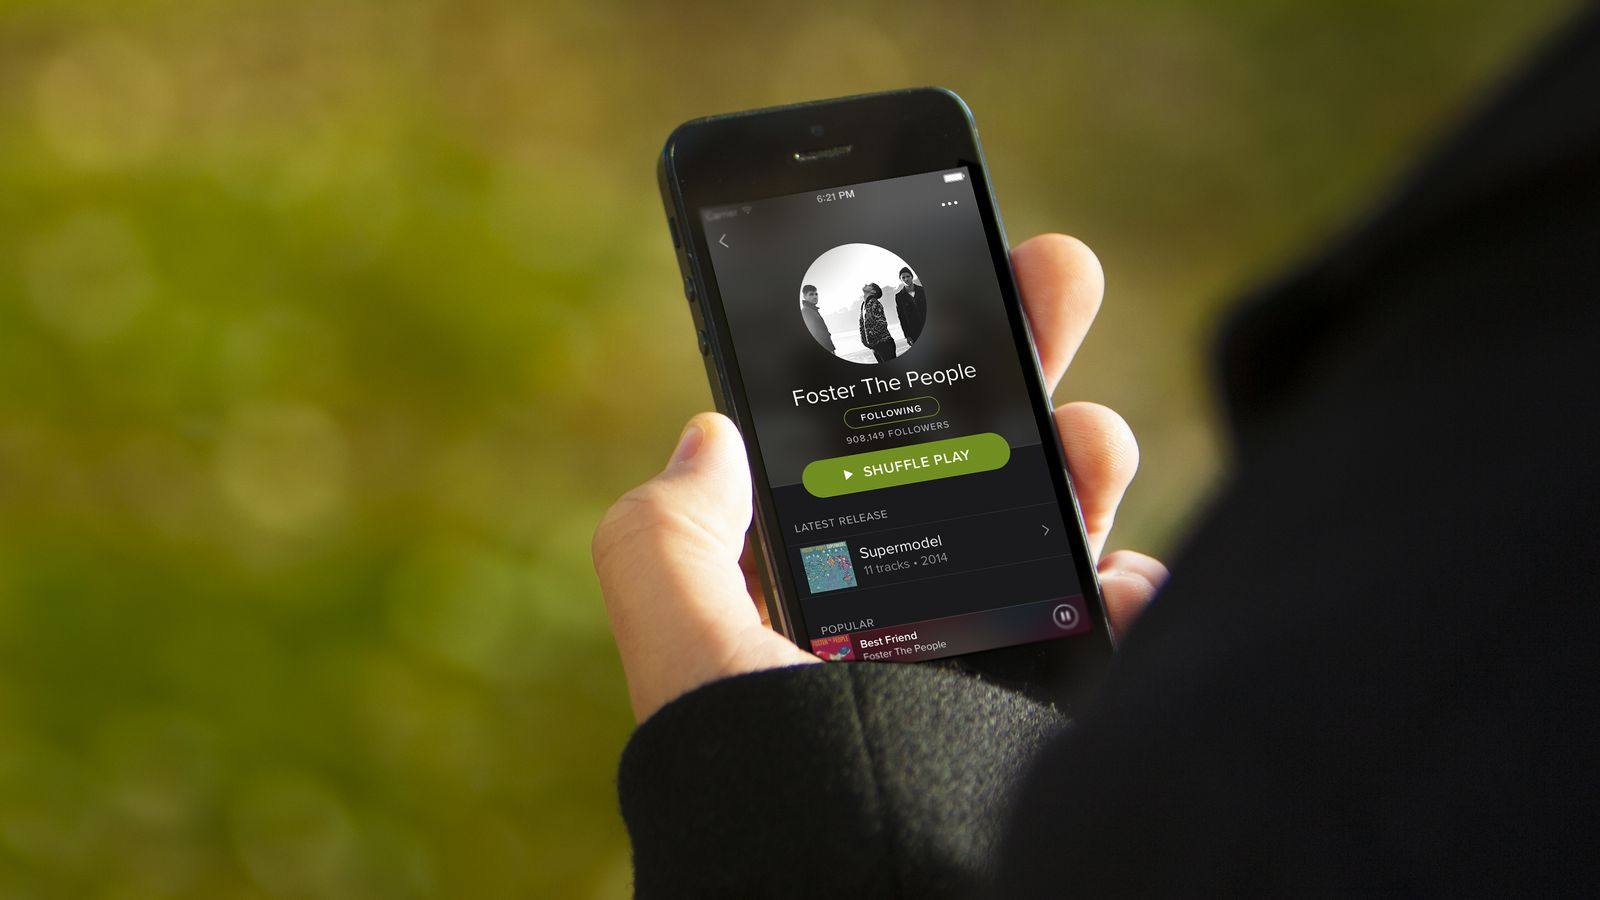 can i download spotify songs to my phone